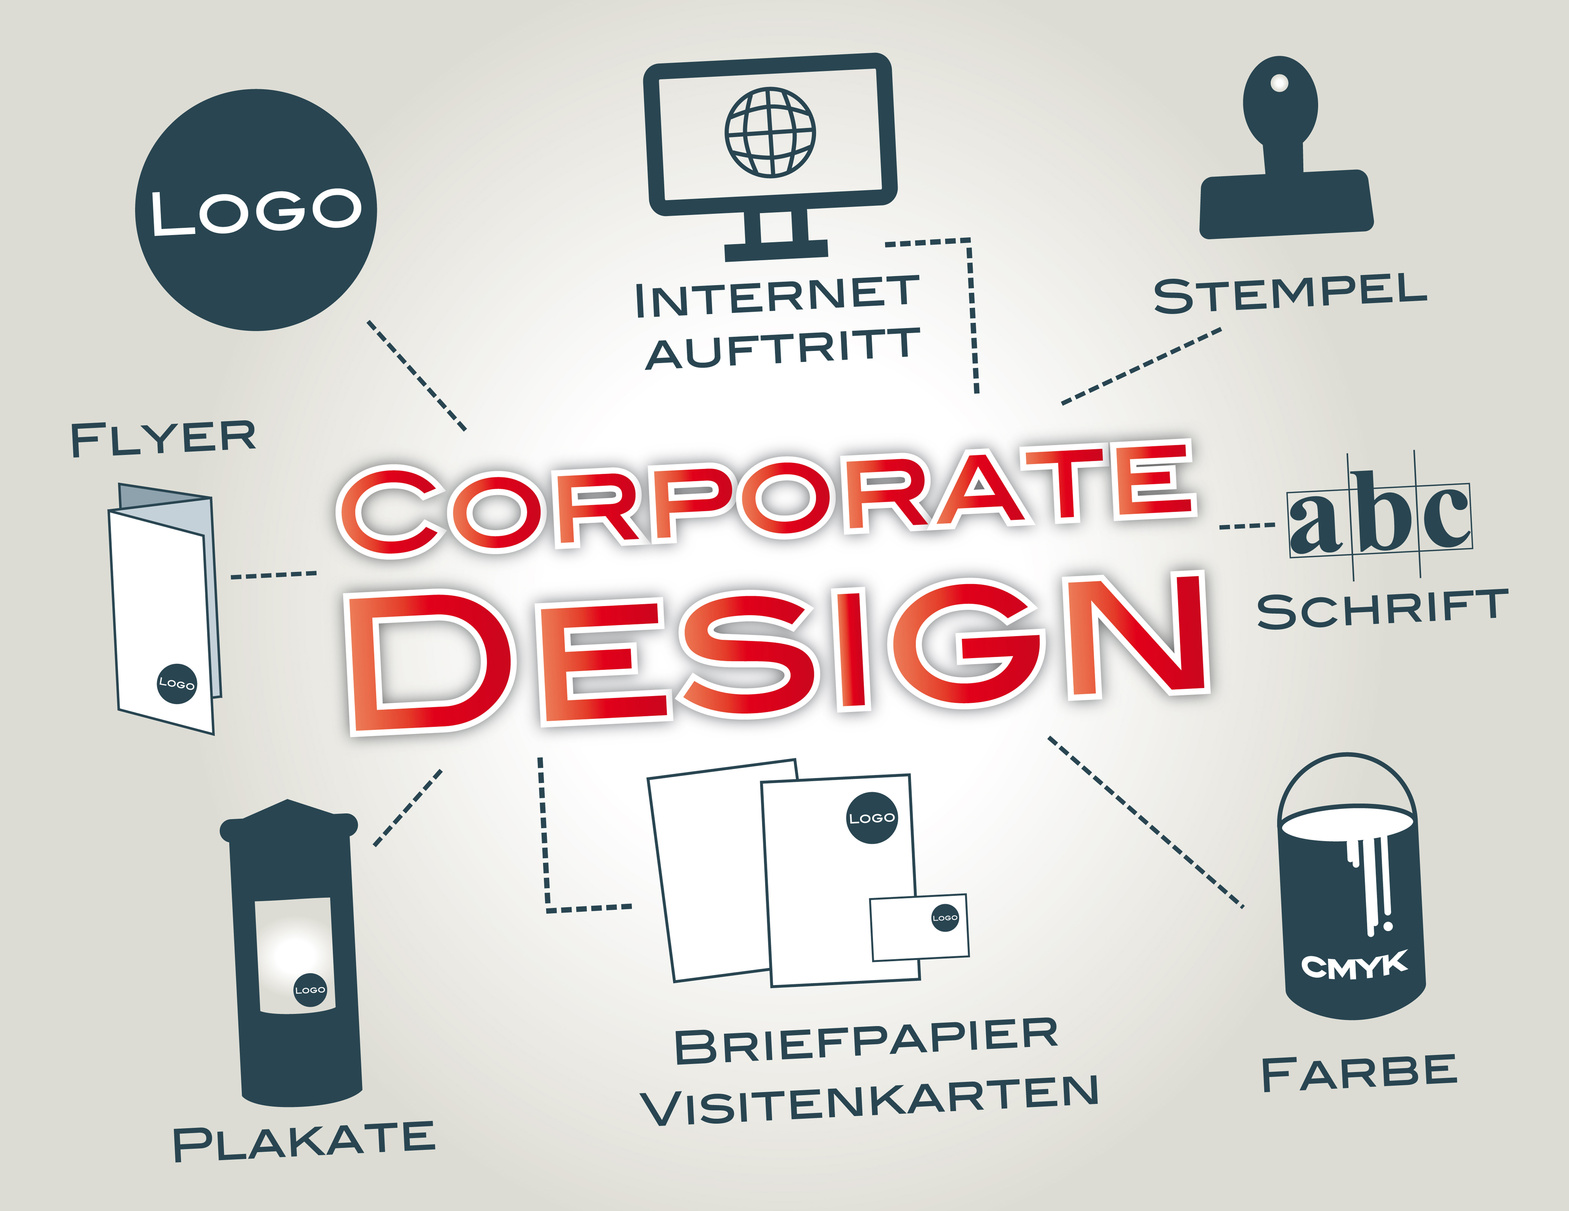 Corporate-design-logo.jpg